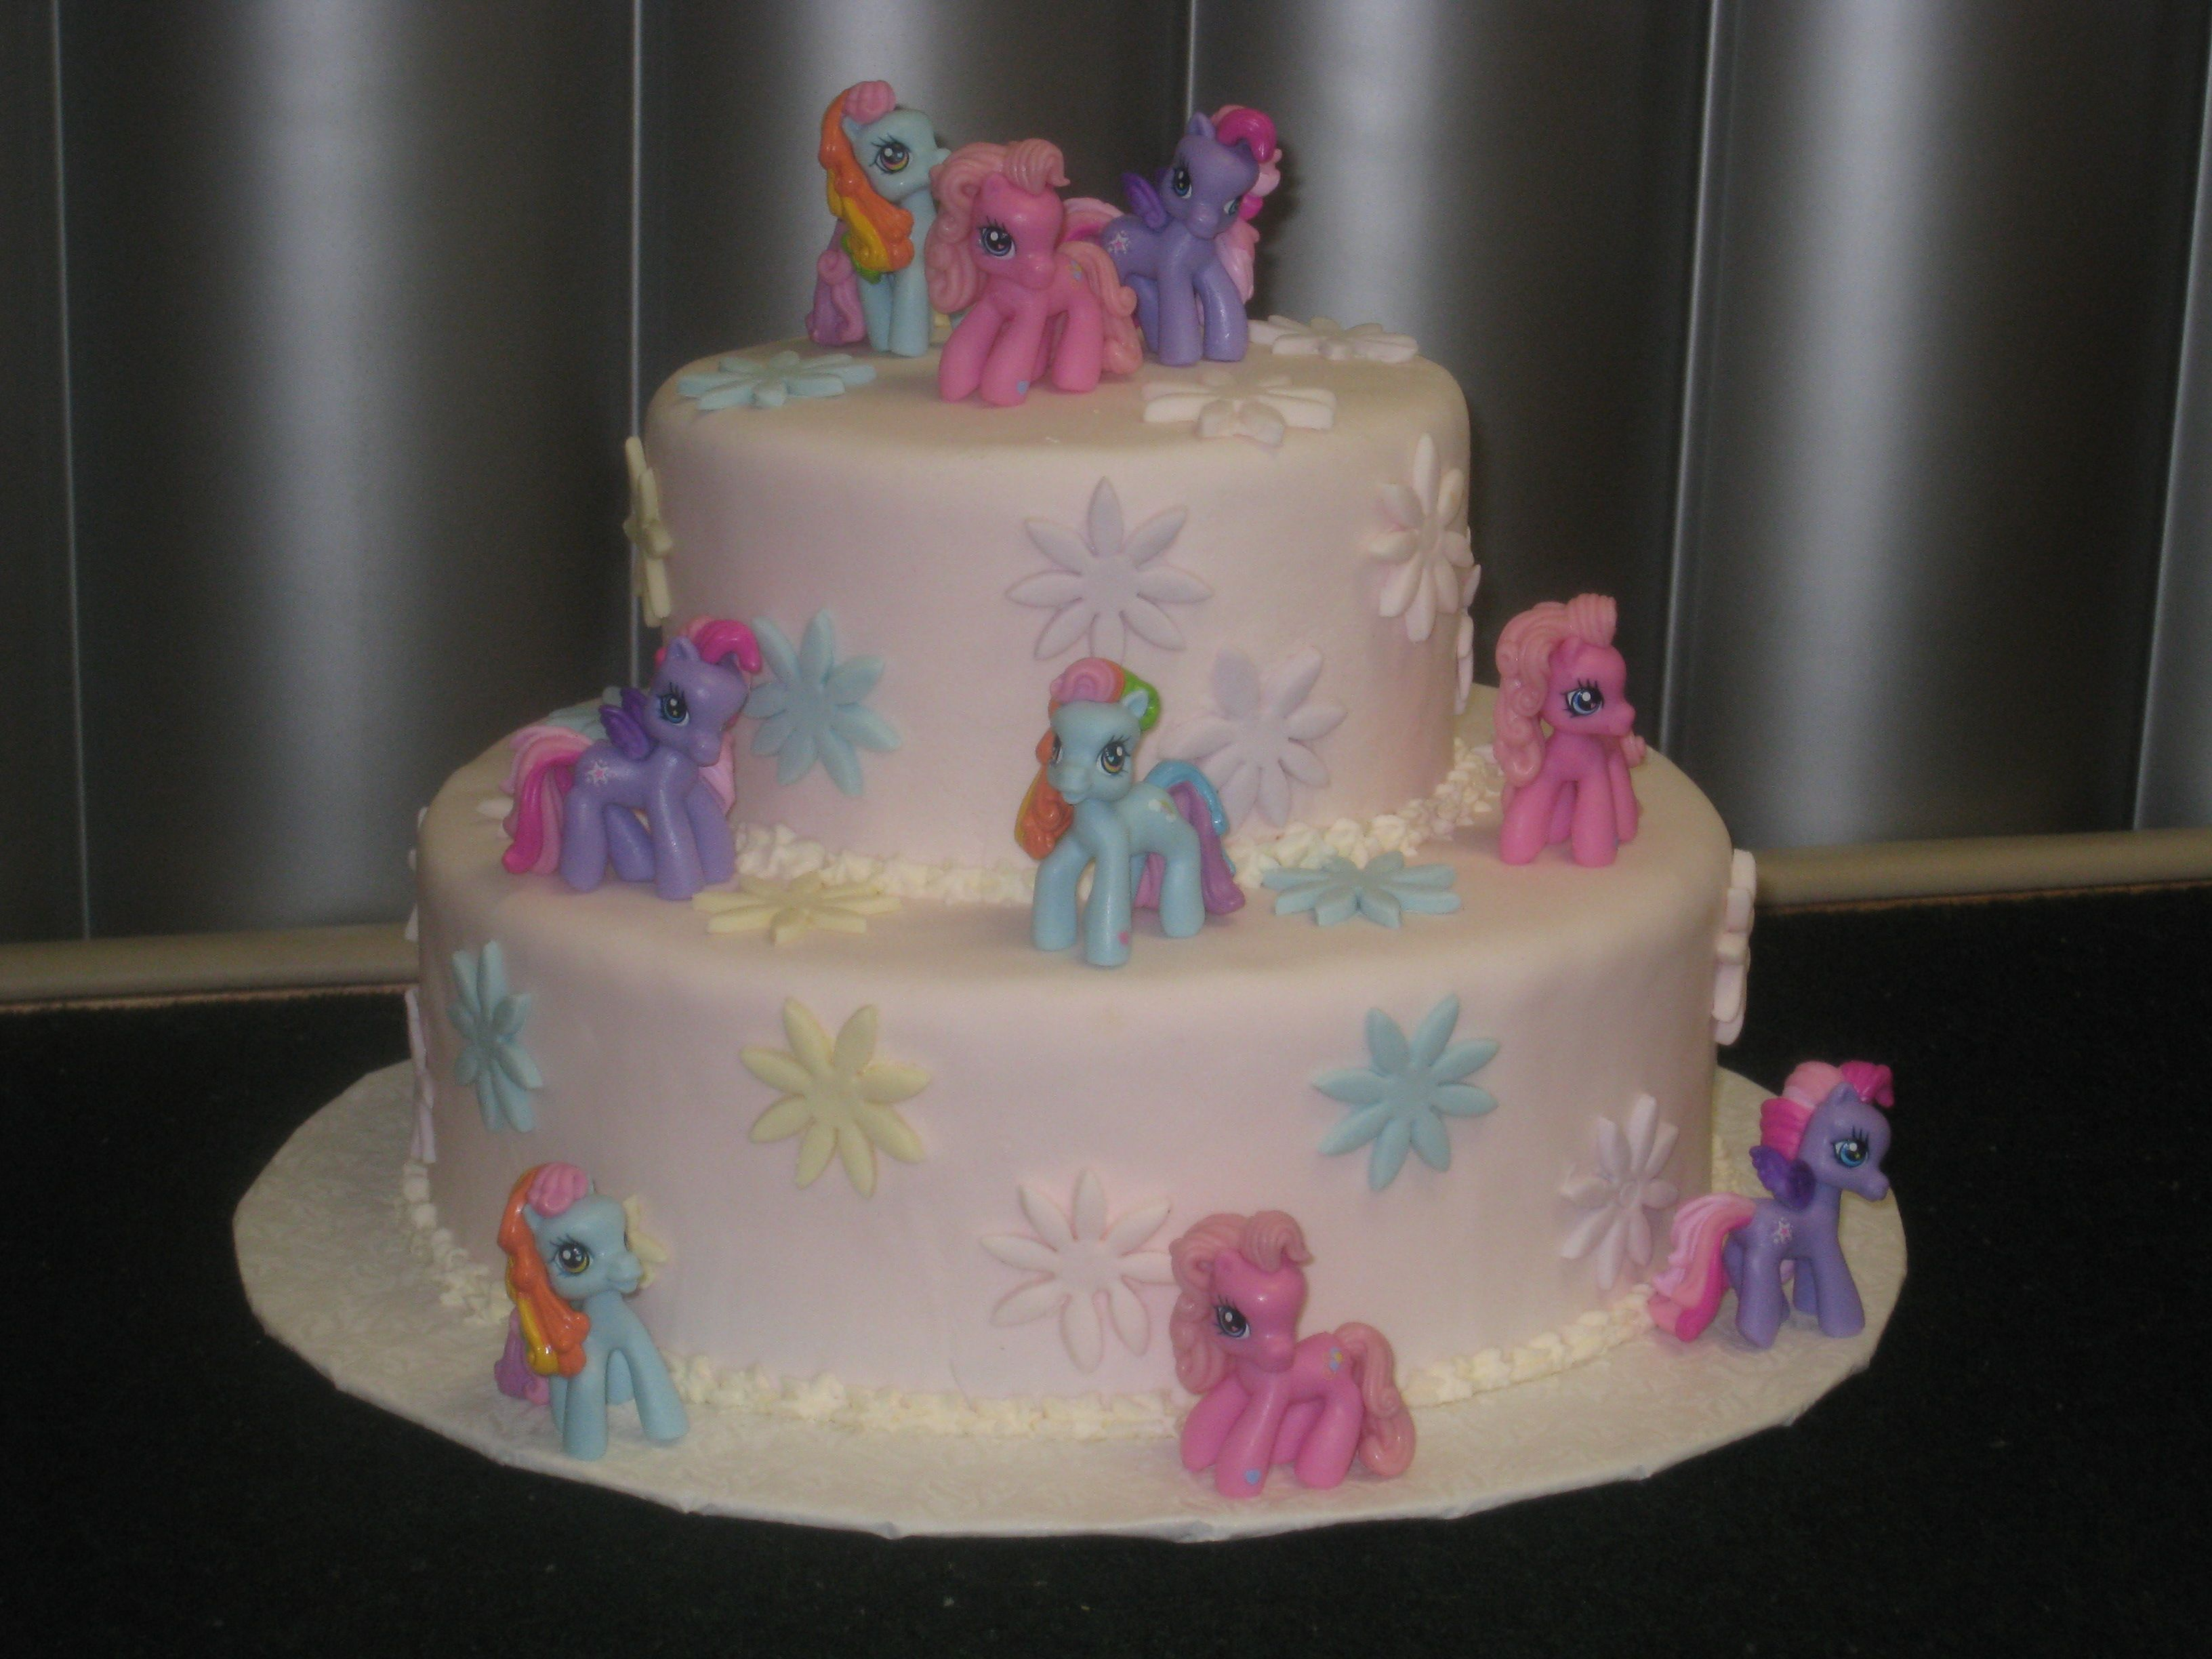 My Little Pony Birthday Cake Max Amp Ruby Fondant Cake Birthday Party Pinterest Birthday Cakes Pony And Birthdays